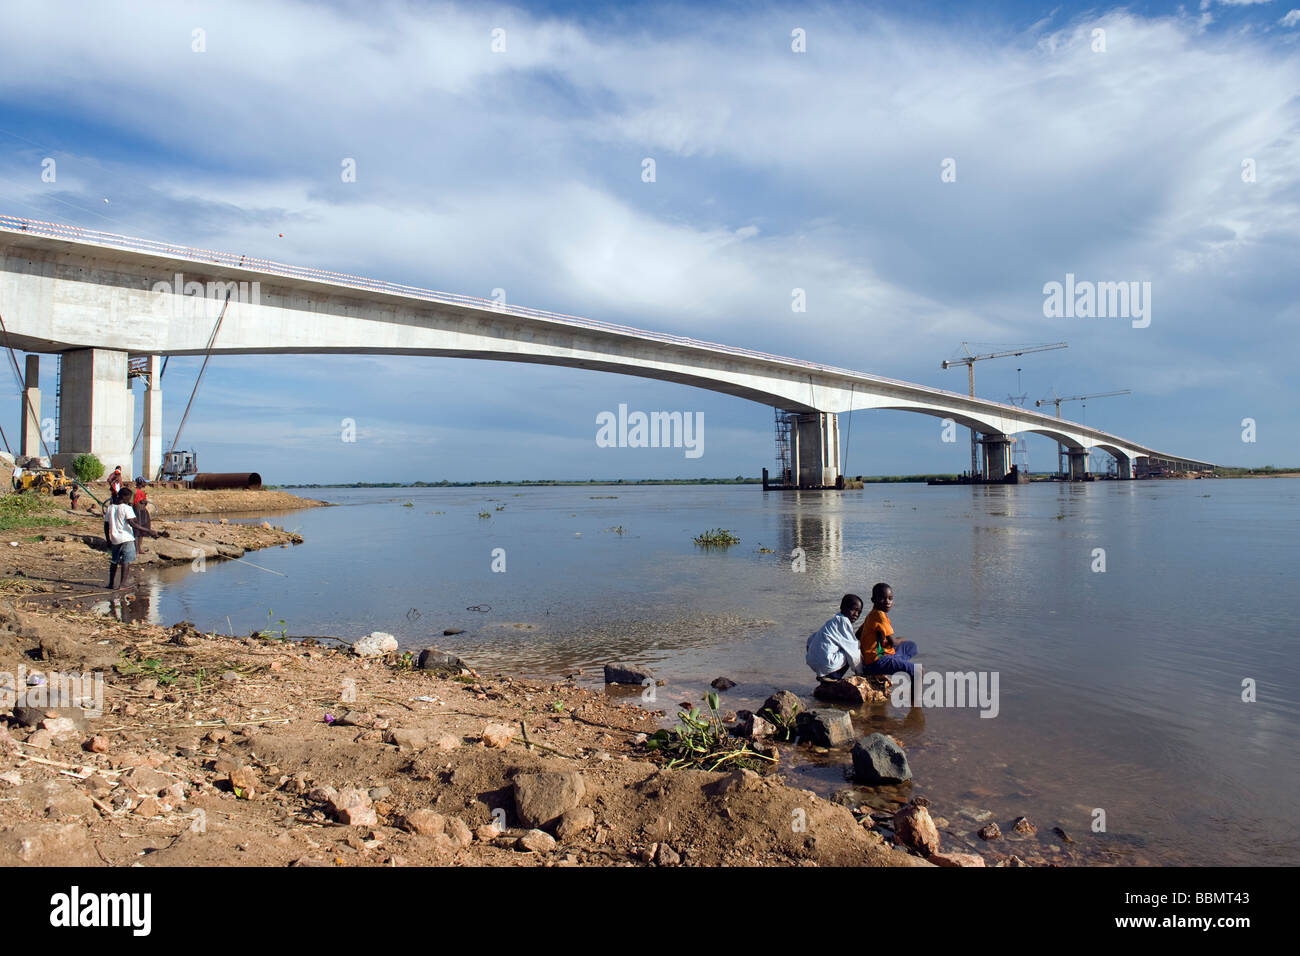 The Zambesi bridge the second longest in Africa 2276m at Caia in Mozambique - Stock Image